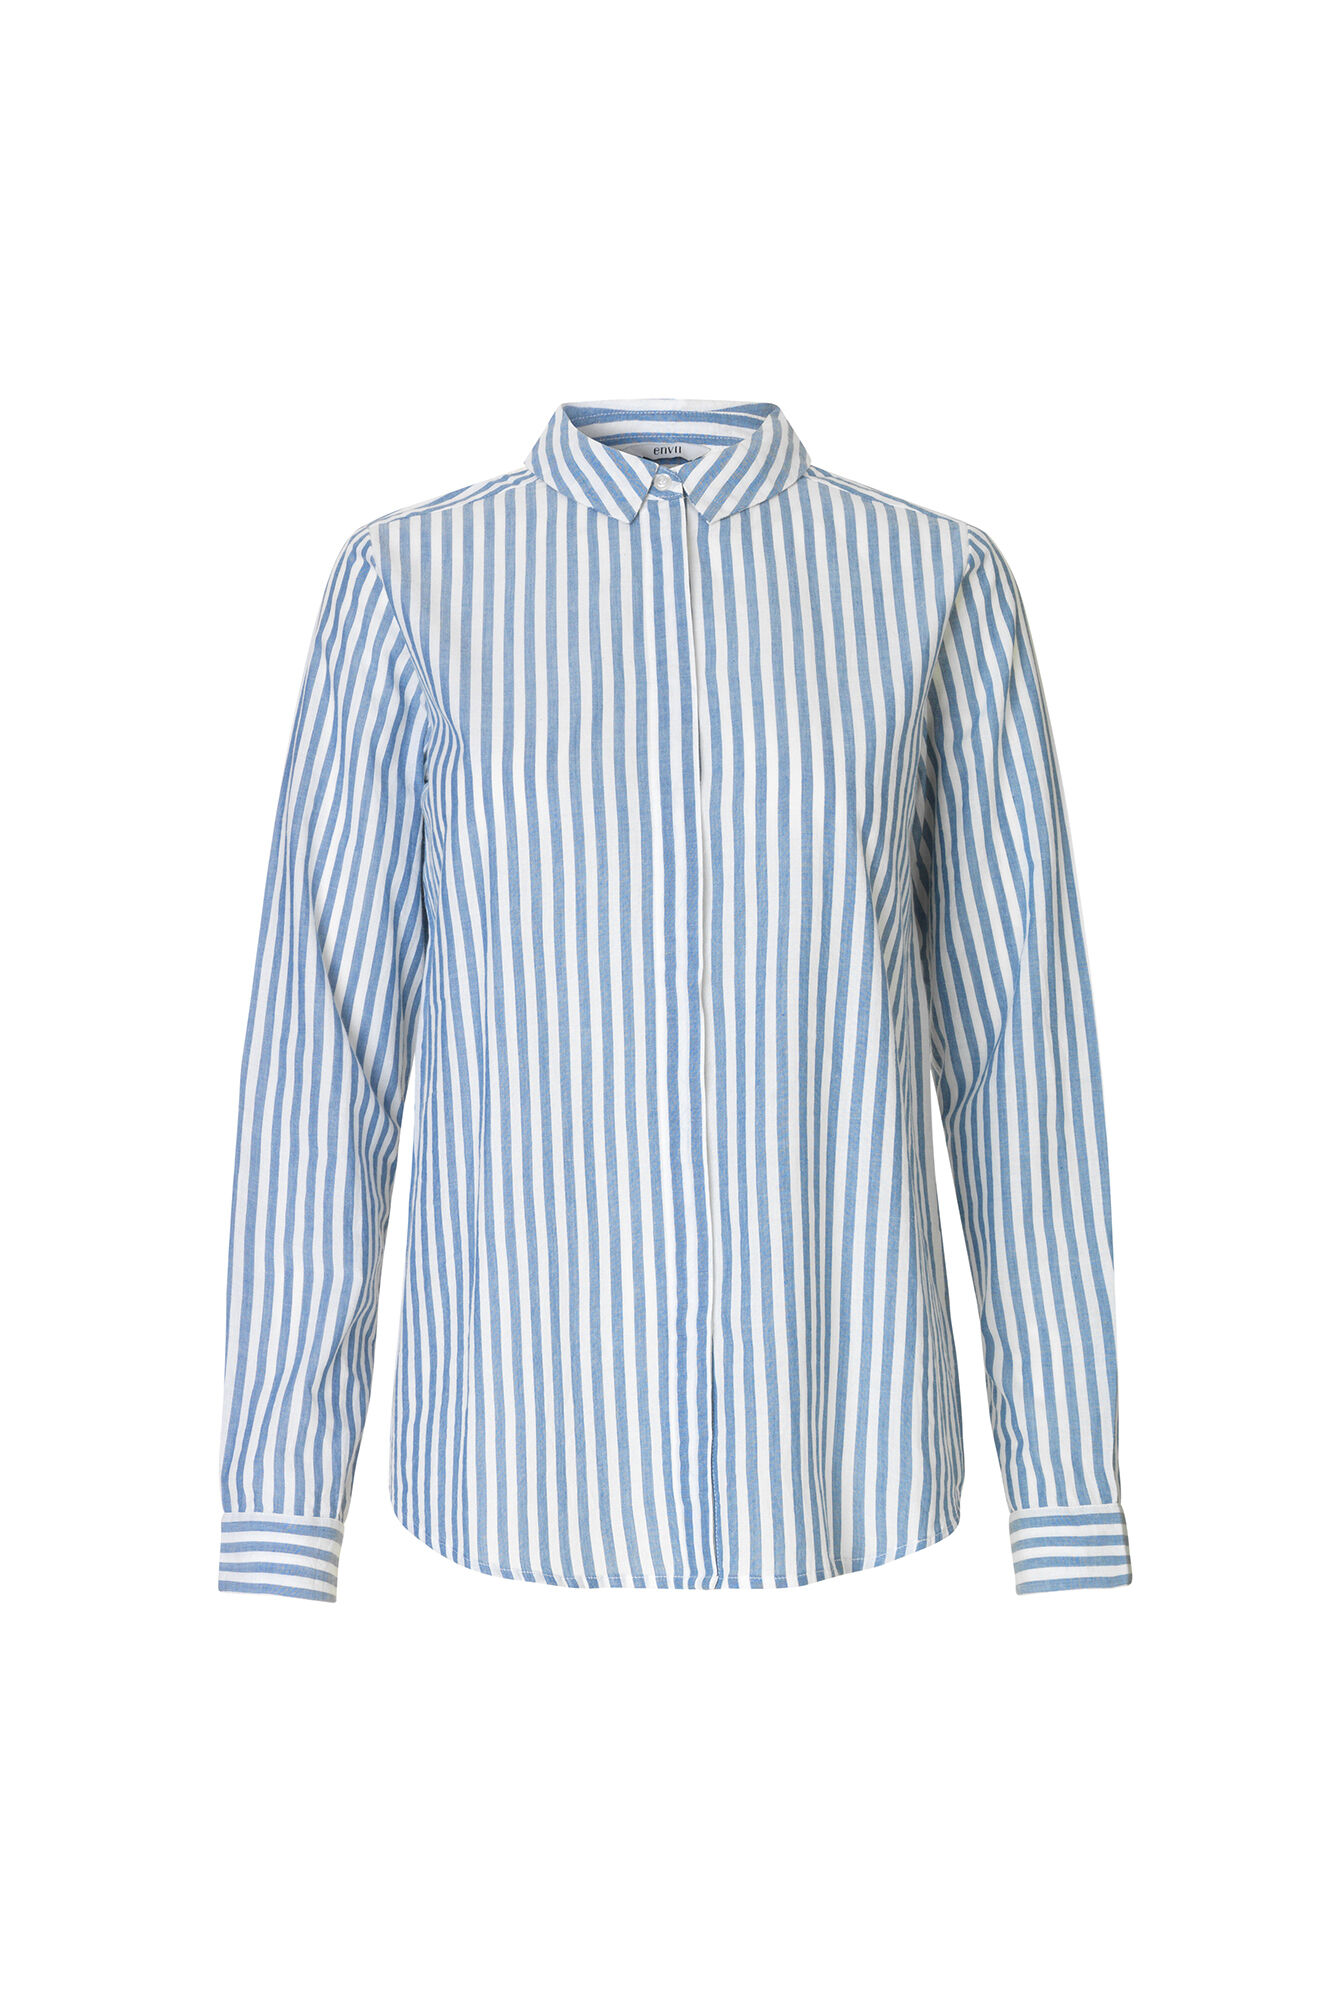 ENMINT LS SHIRT STRIPE 6509, BLUE-WHITE ST